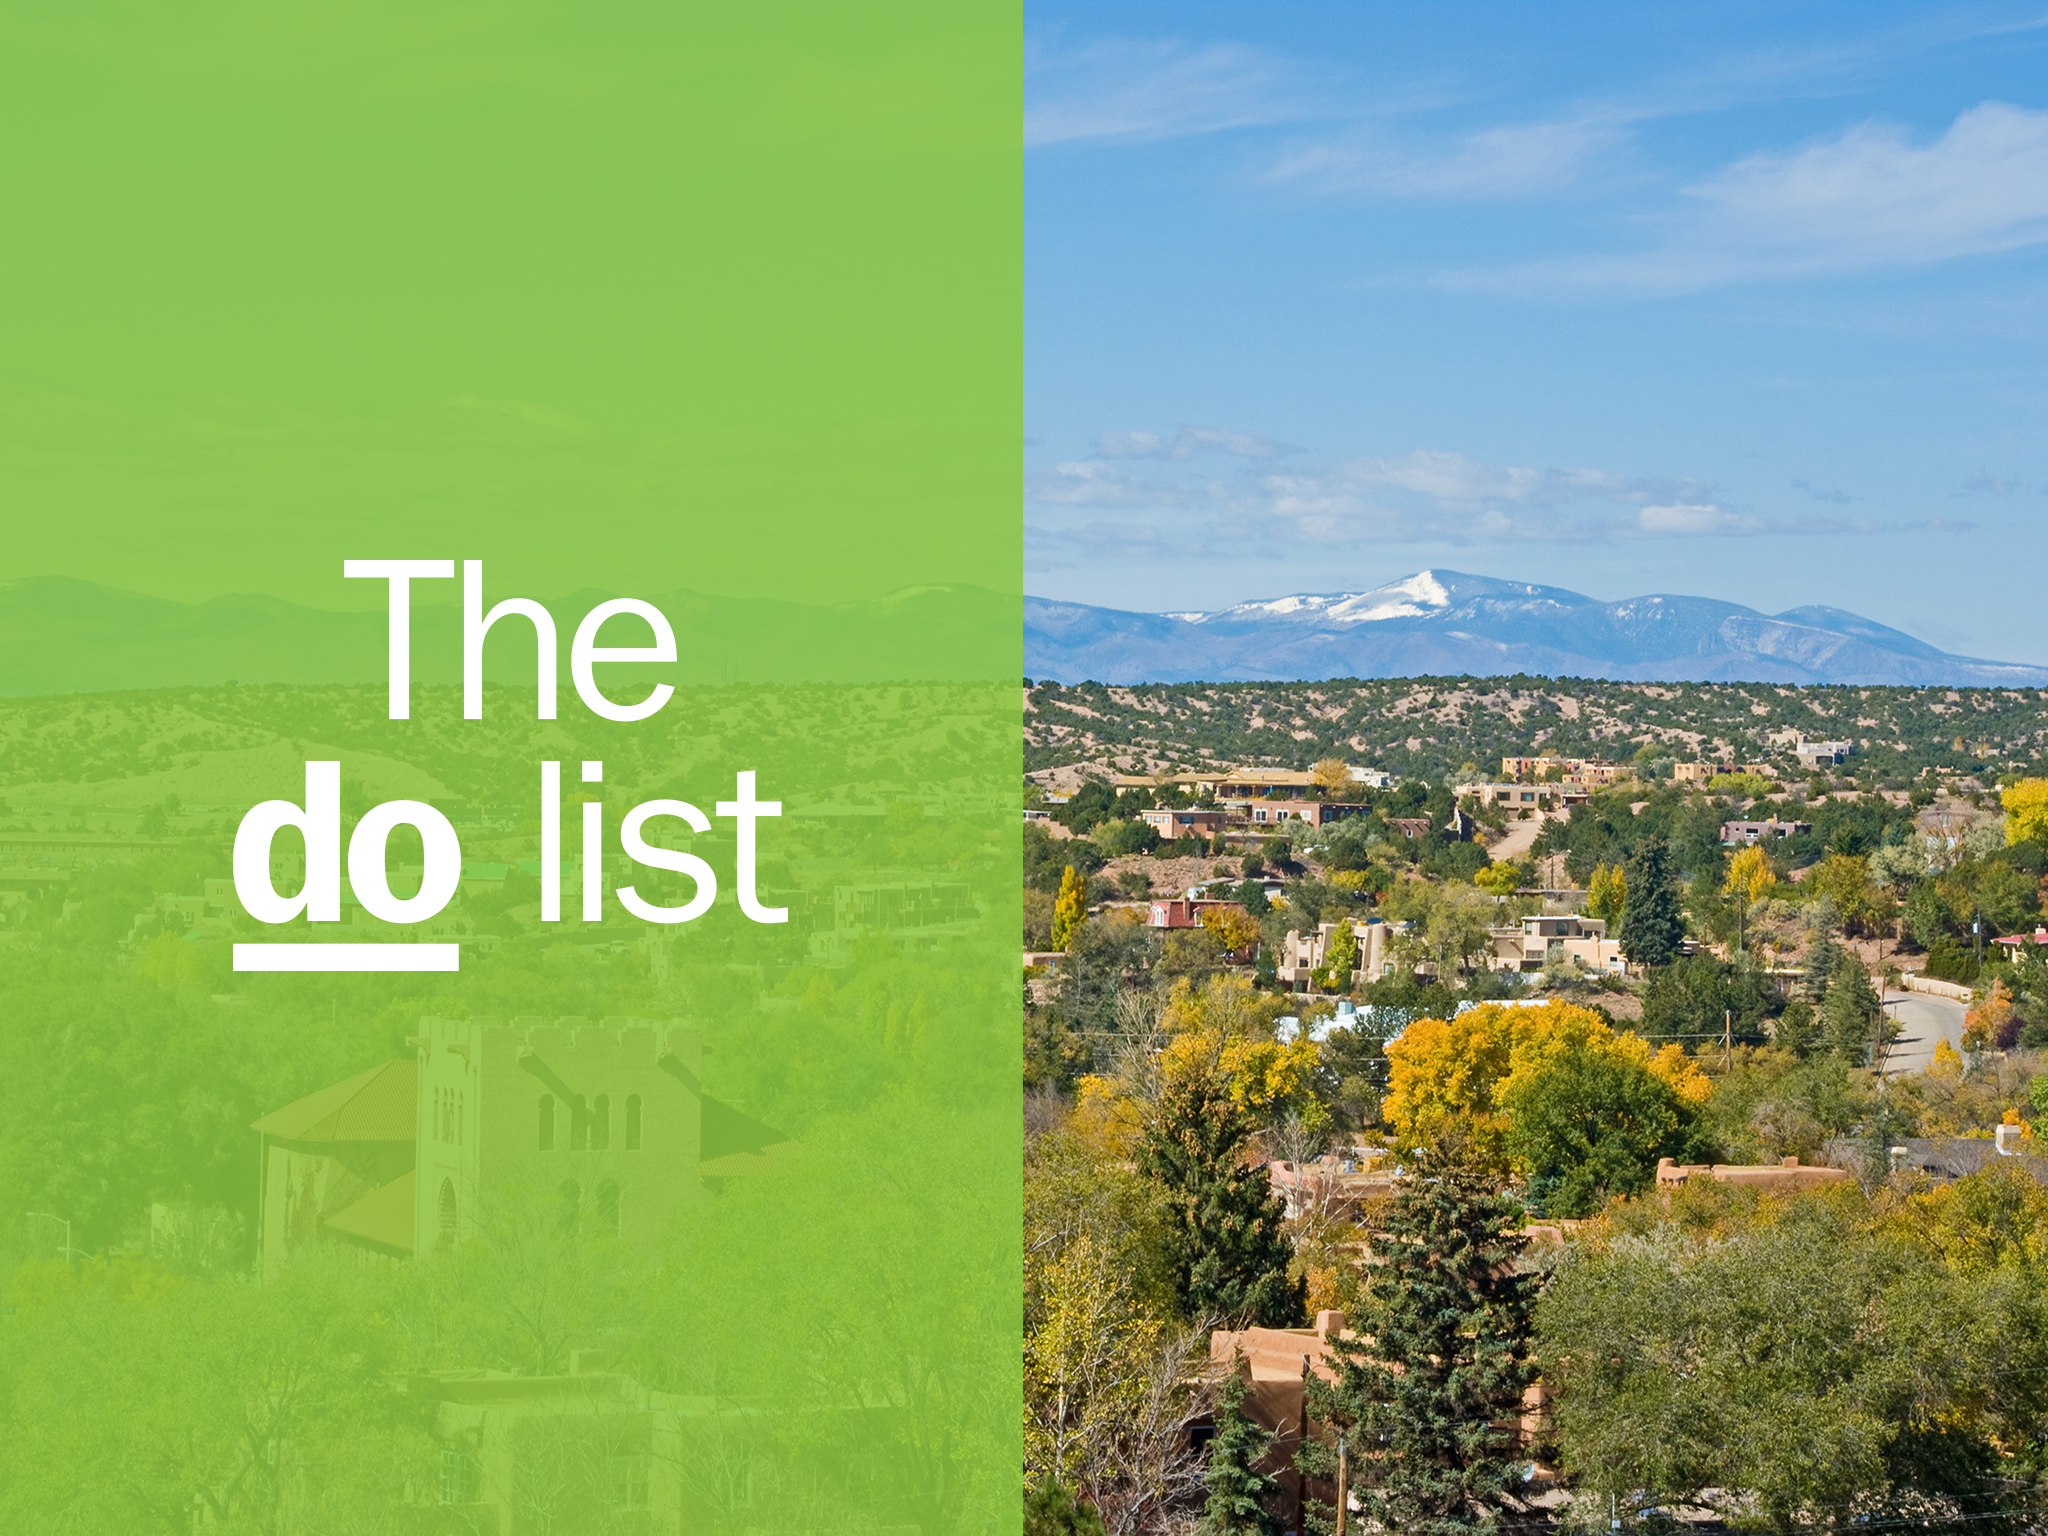 The 10 best things to do in Santa Fe